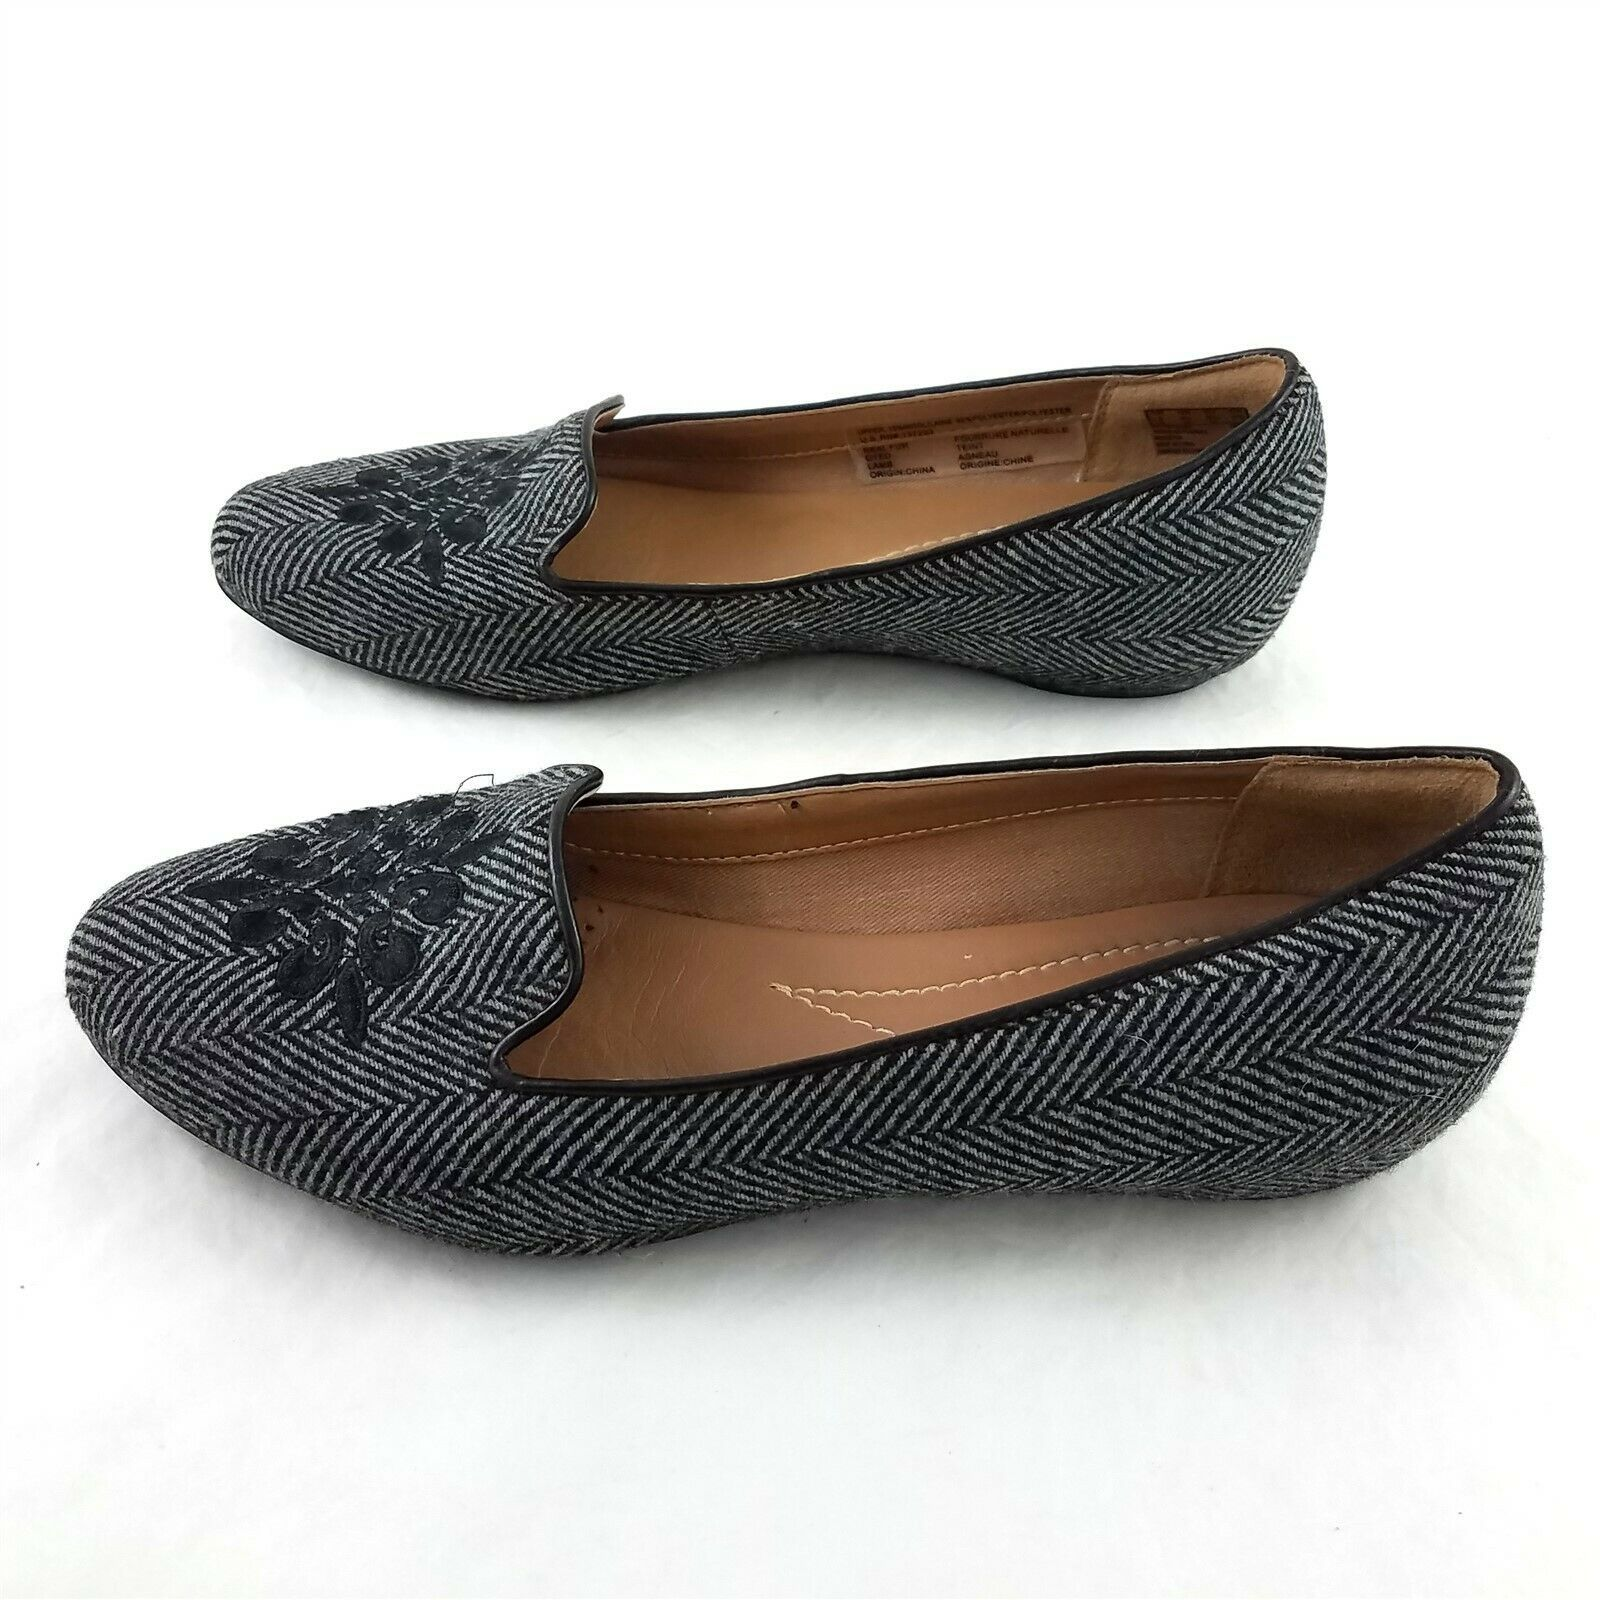 Primary image for Clarks Artisan Gray Herringbone Floral Wool Blend Ballet Flats Shoes Women 8.5 M